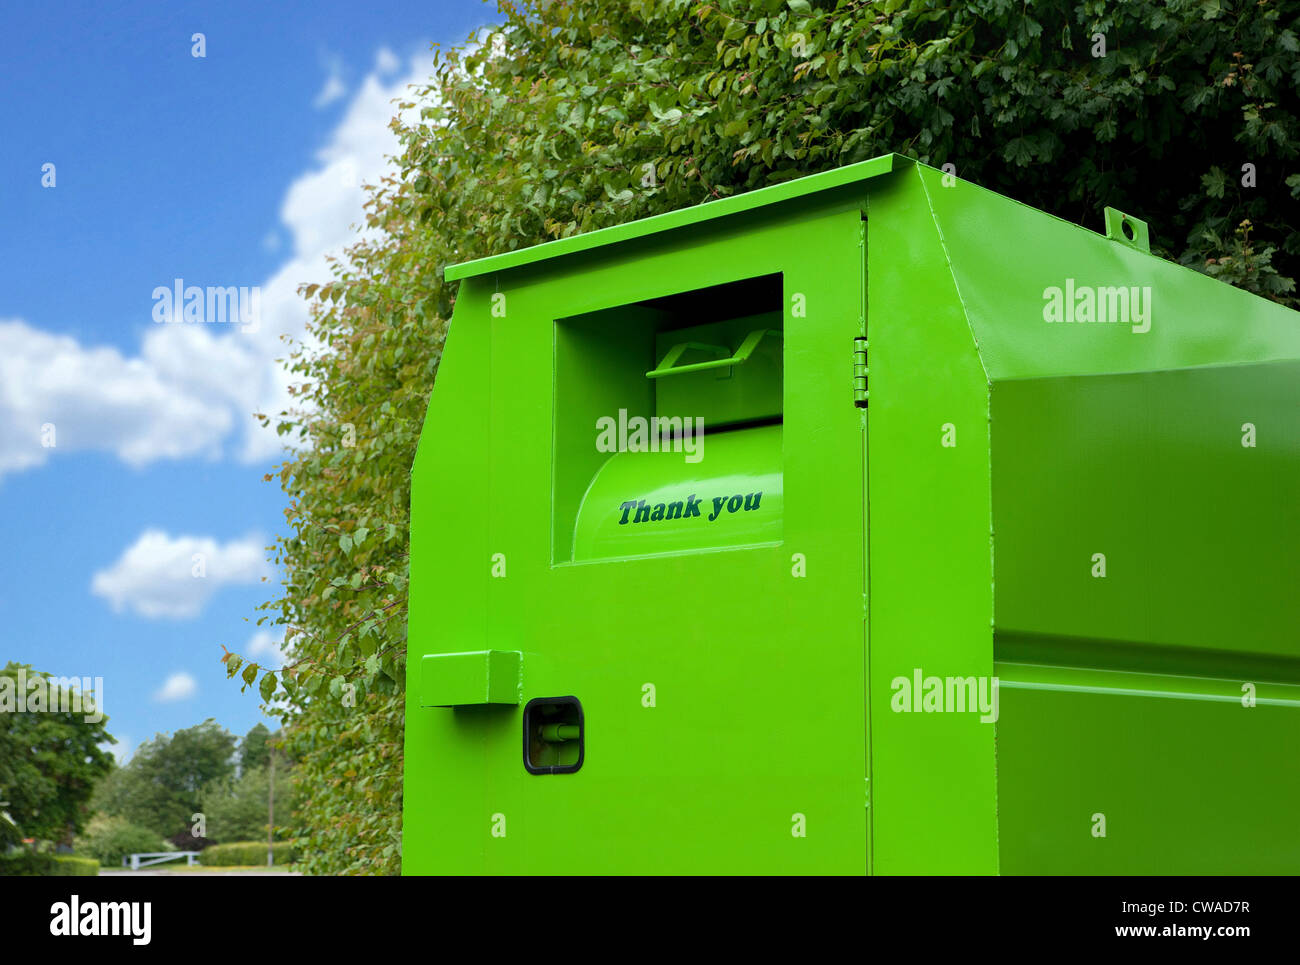 Clothes bank - Stock Image